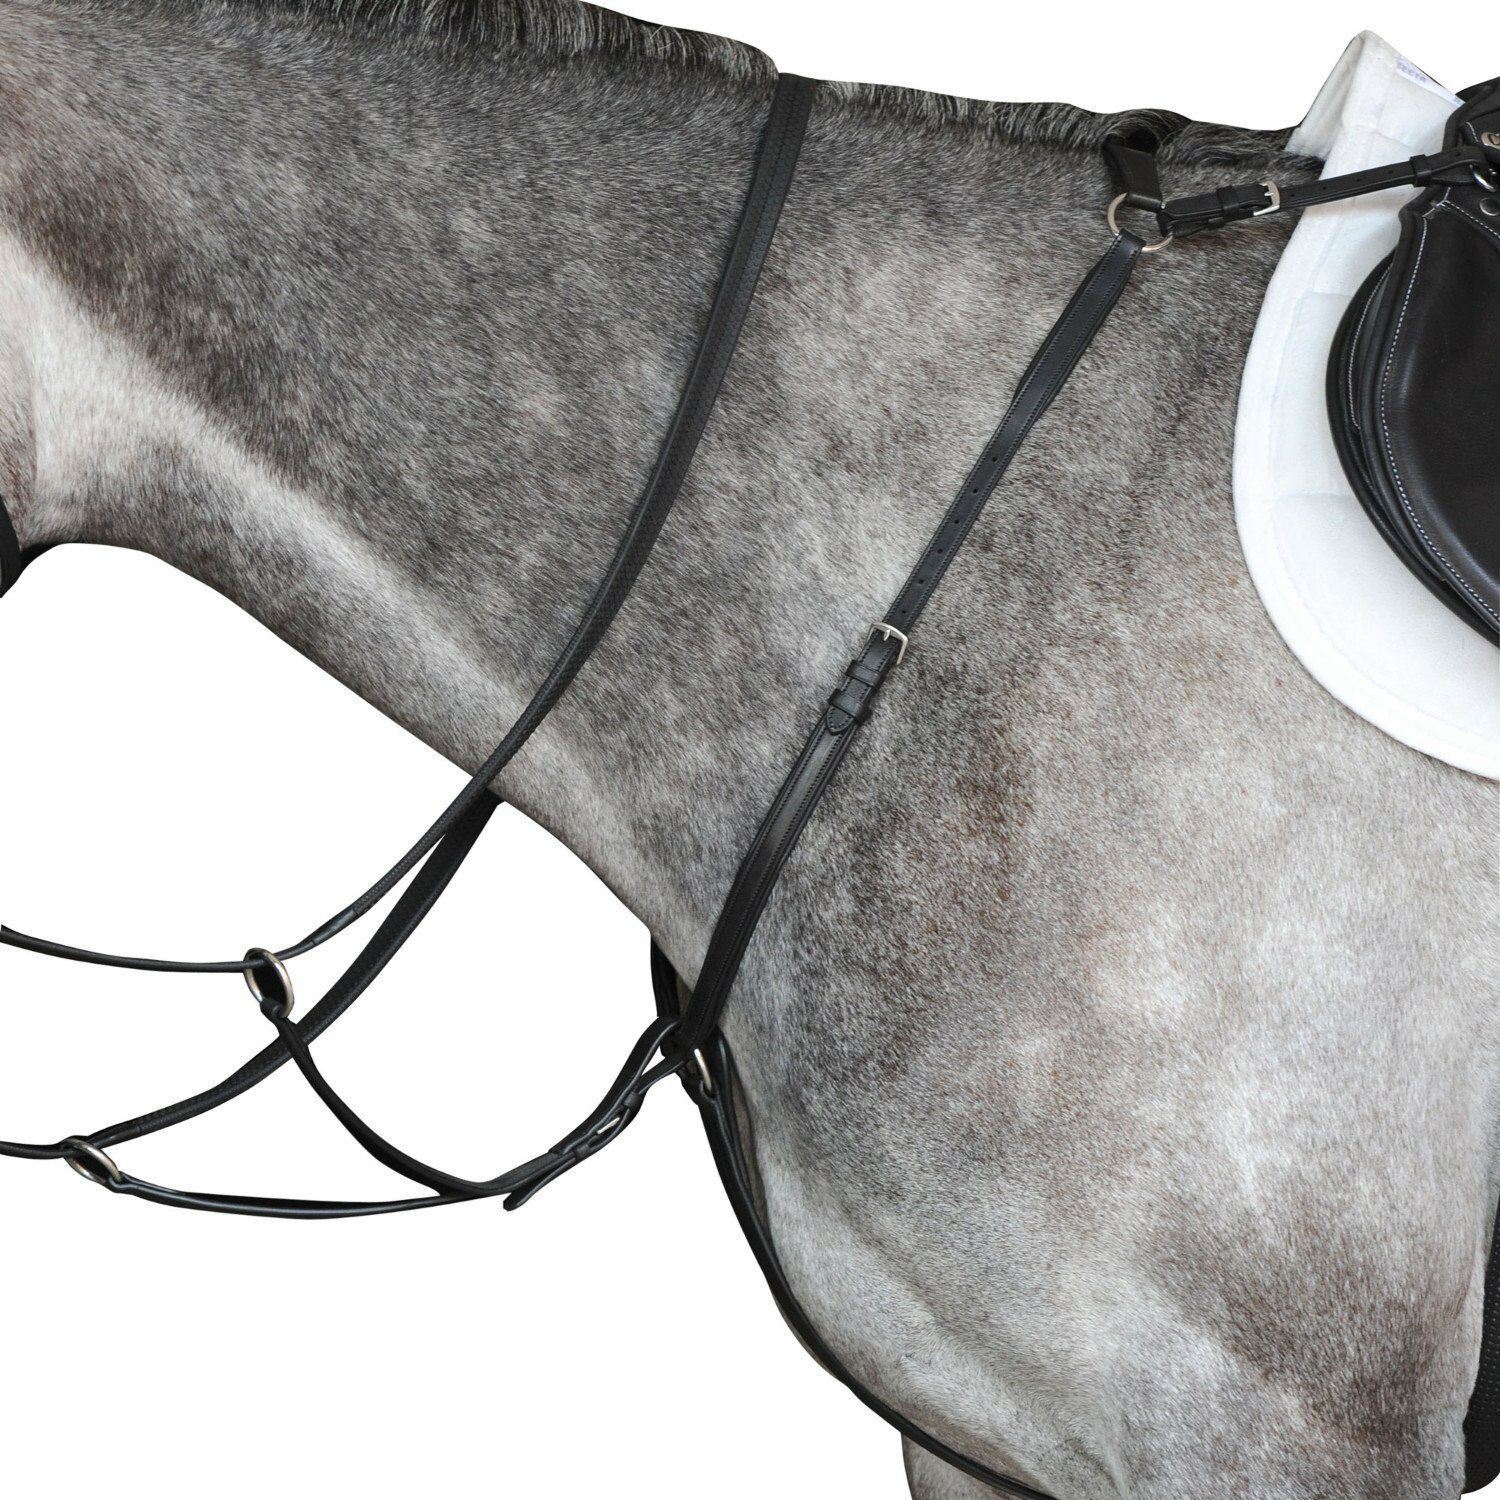 Collegiate Hunter Leather Breast Plate  IV Attaches to Saddle in 3 Points  we supply the best